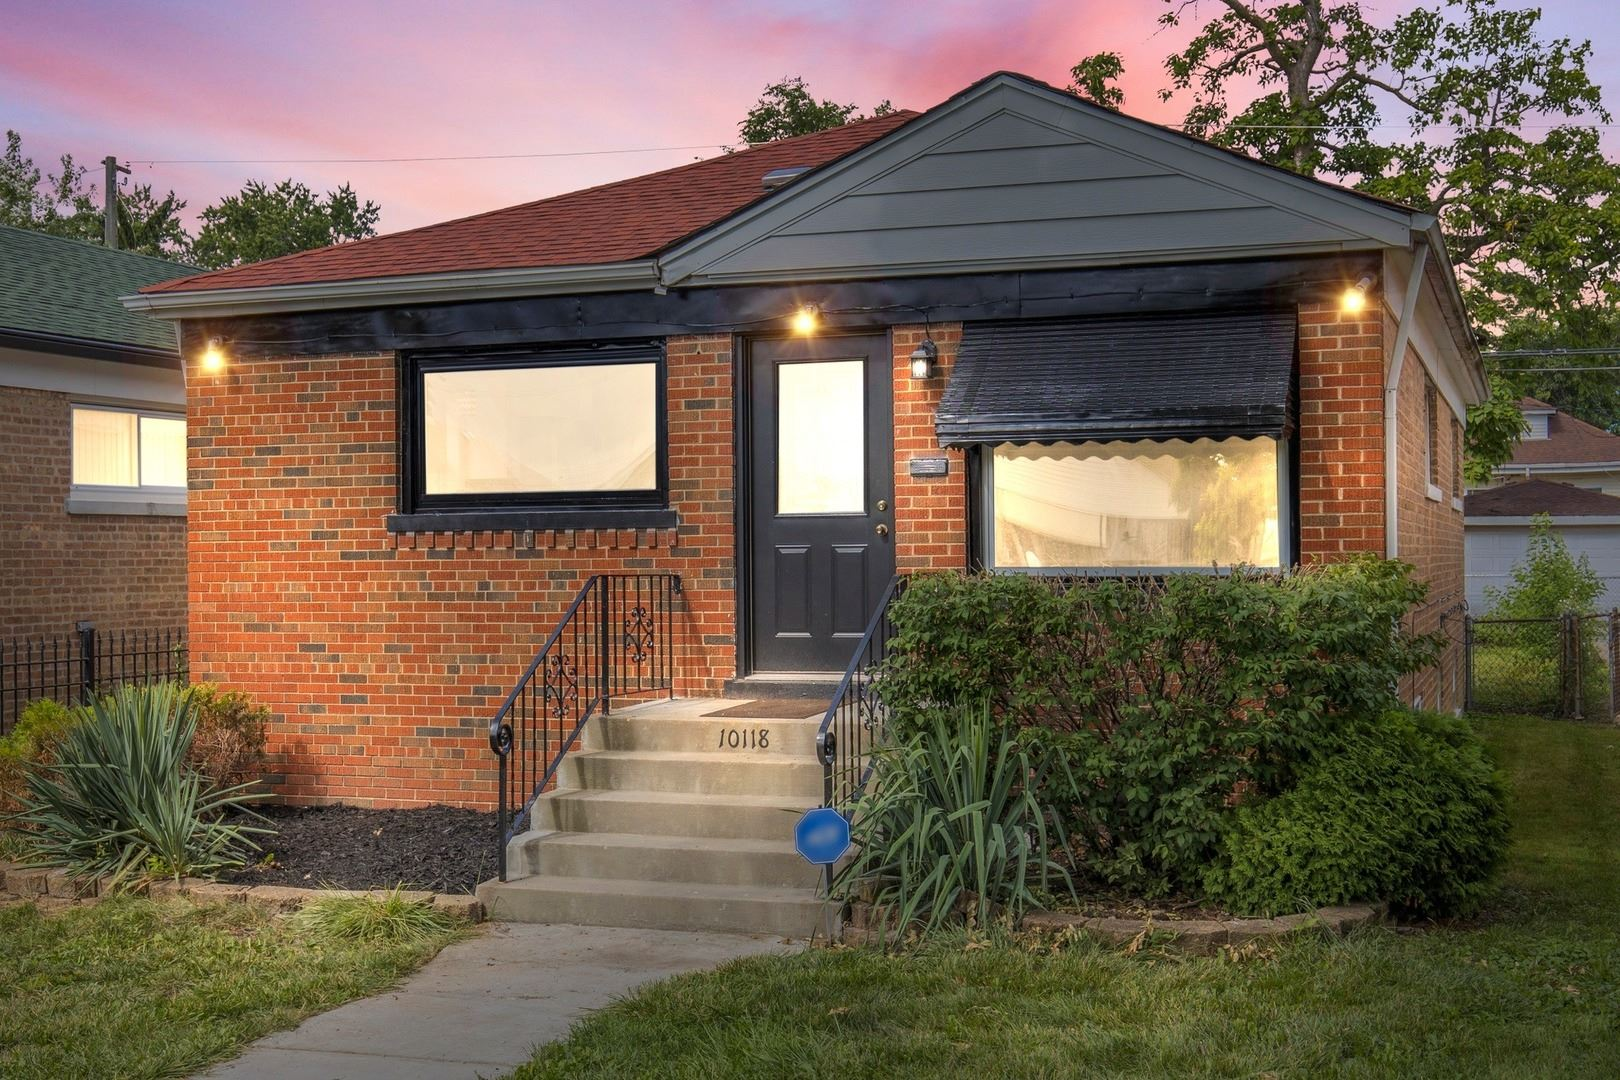 10118 S Green Street S, Chicago, IL 60643 - #: 10774714